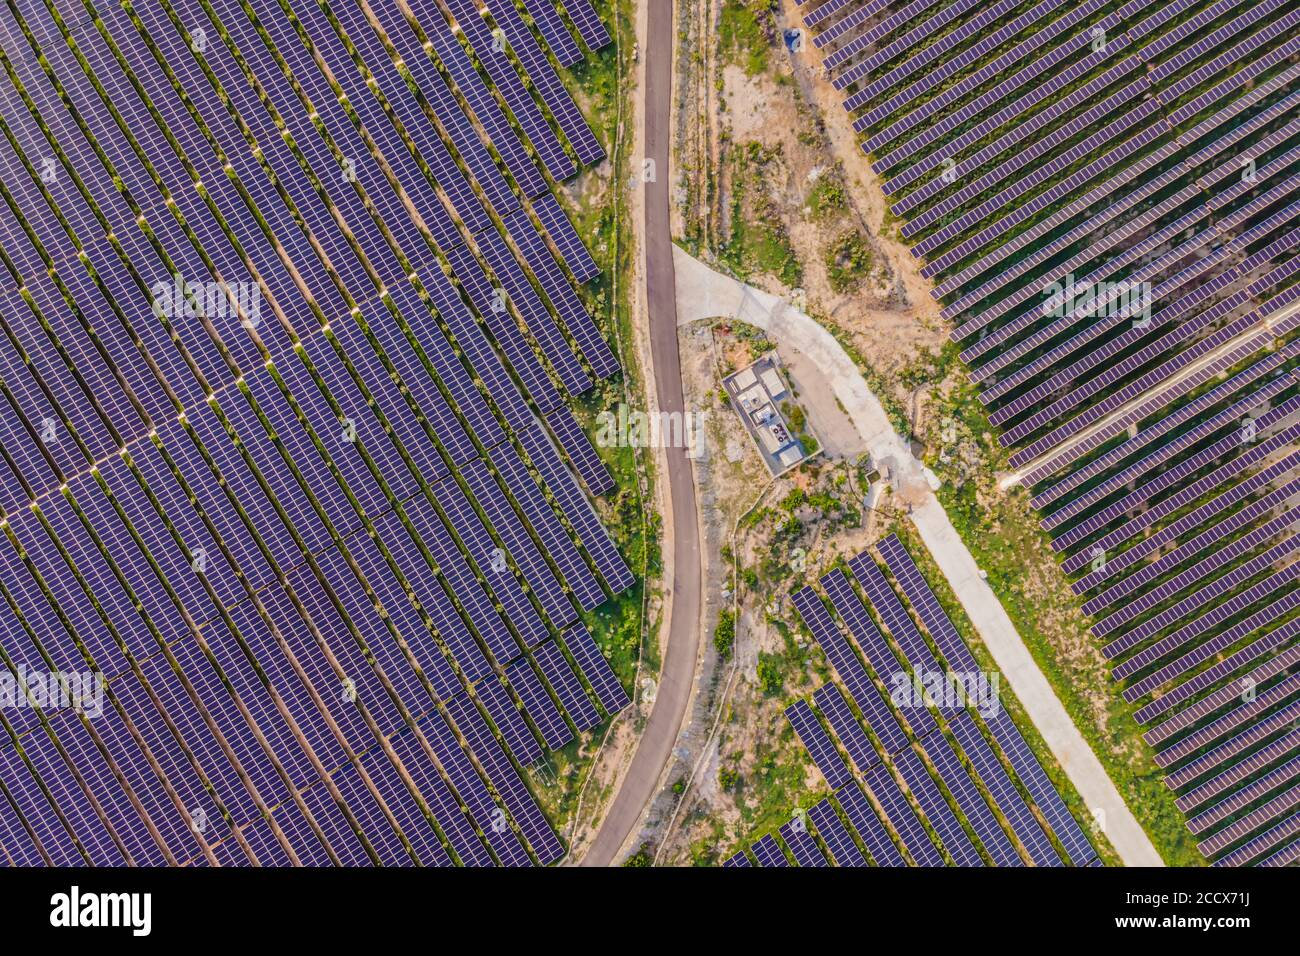 Aerial view of the solar panel in solar farm for green energy Stock Photo